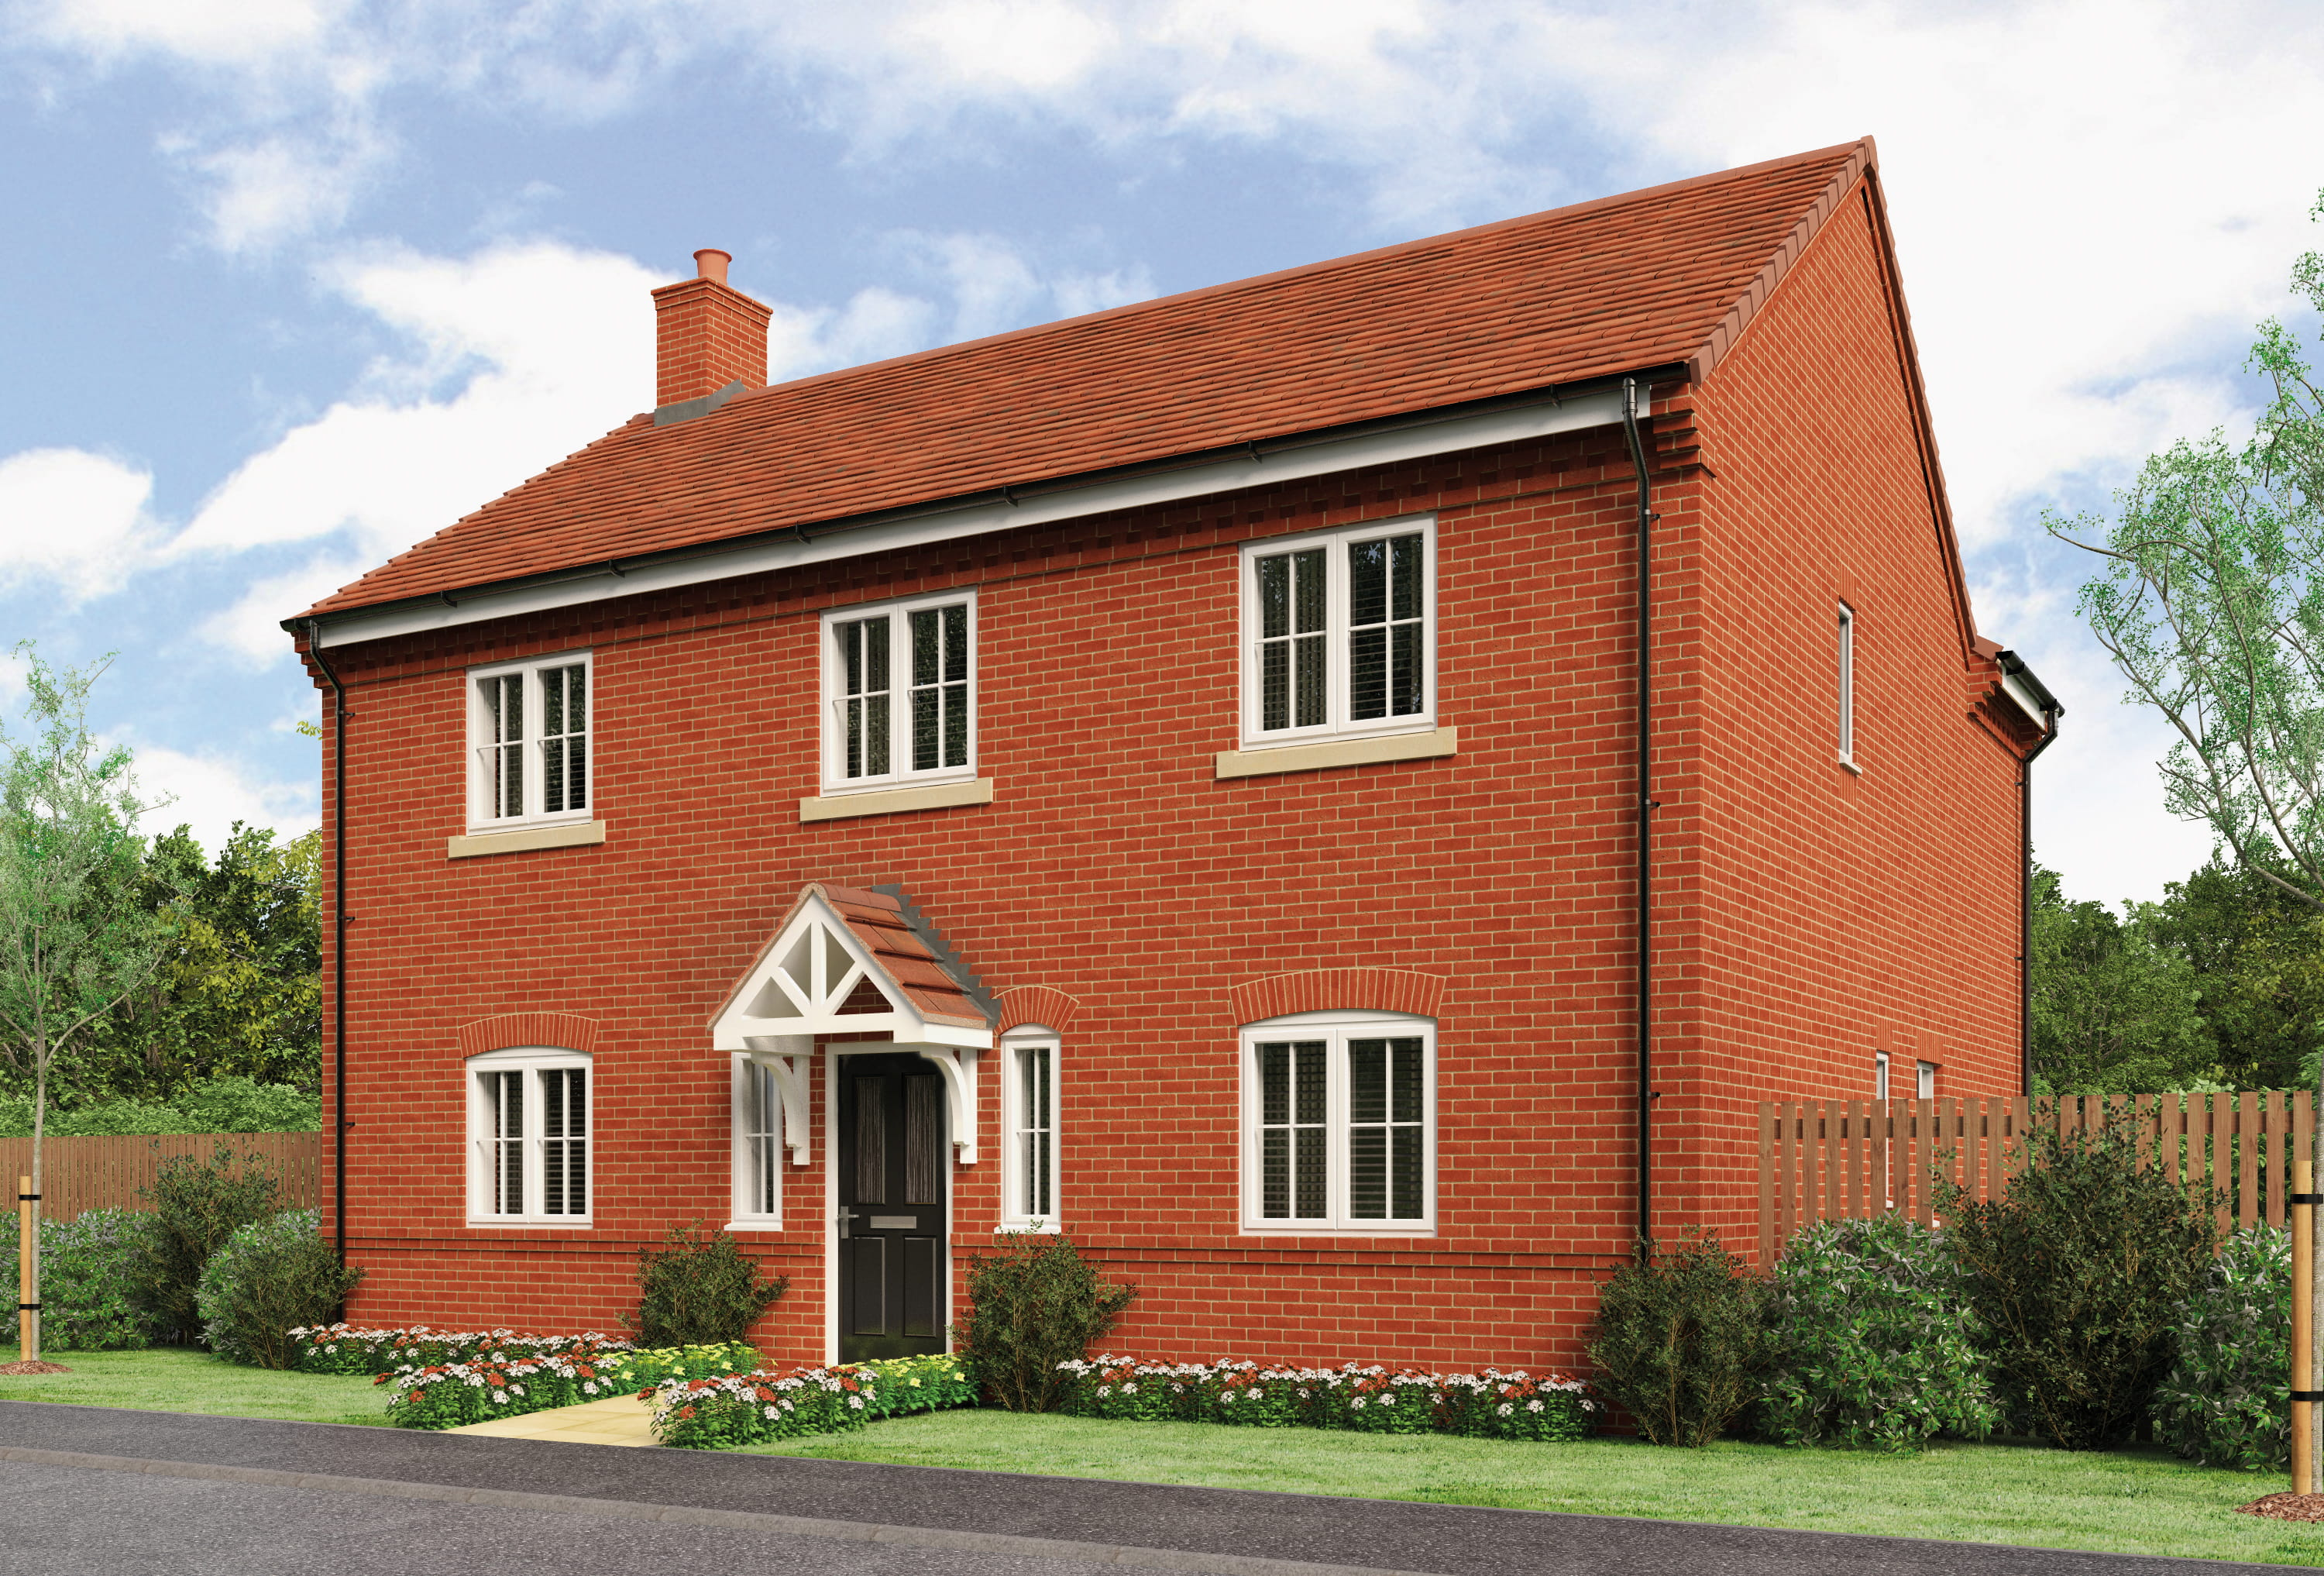 Evesham 4 Bedroom House For Sale In Wythall